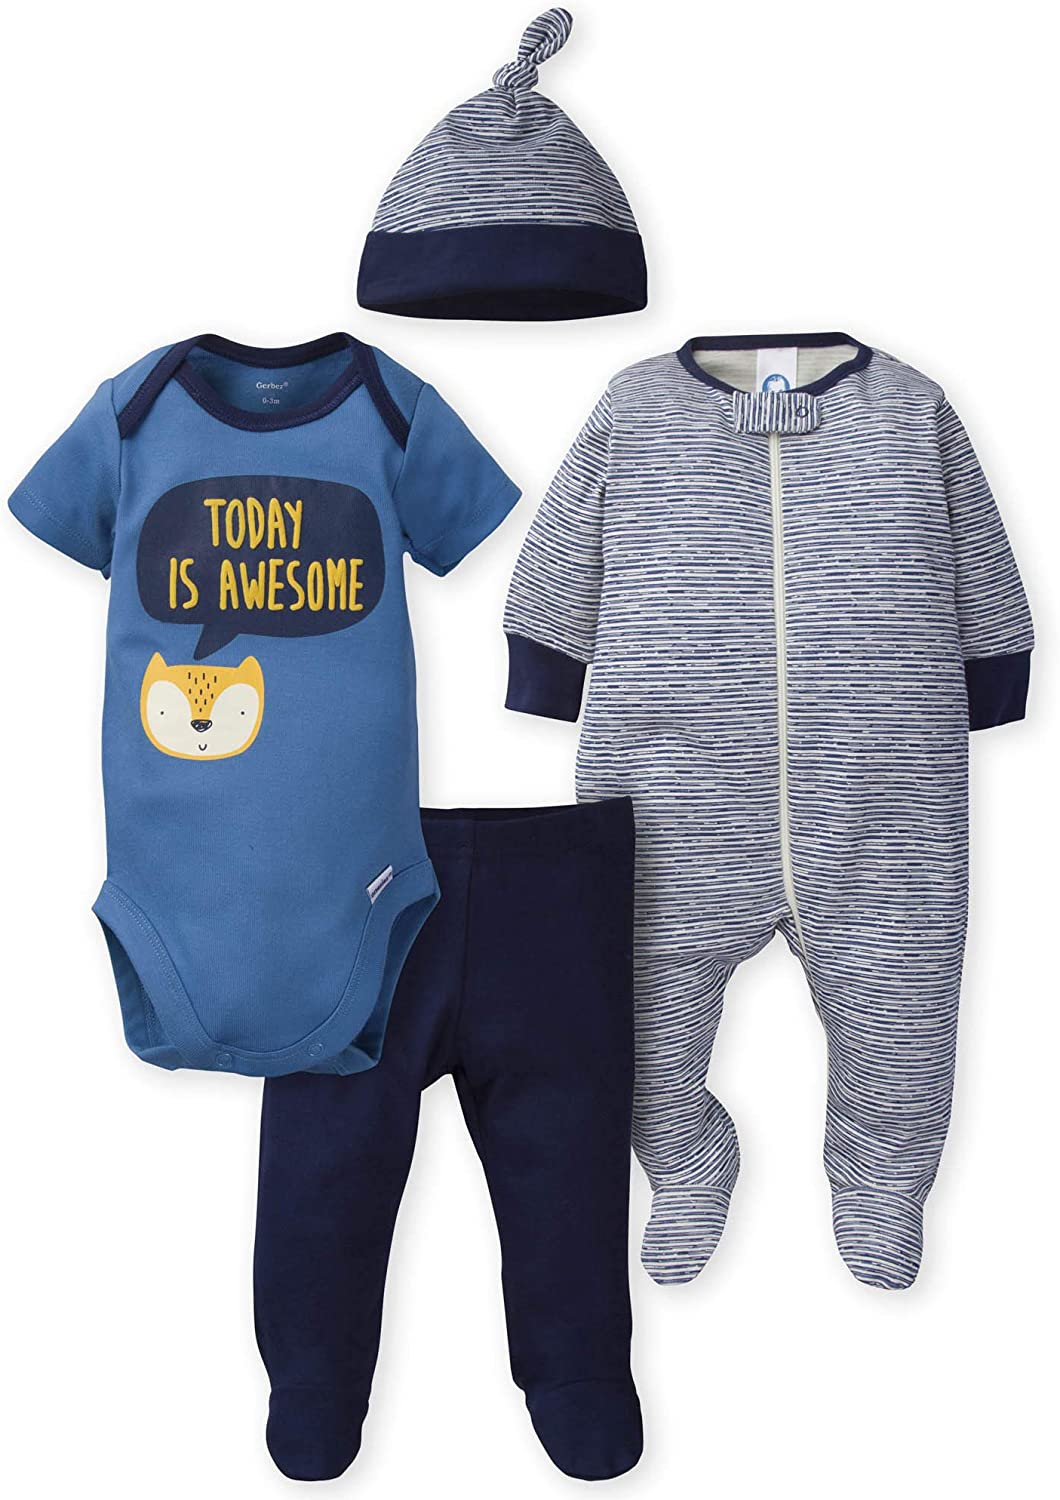 Gerber Baby Boys' 4-Piece Sleep 'N Play, Onesies, Pant and Cap